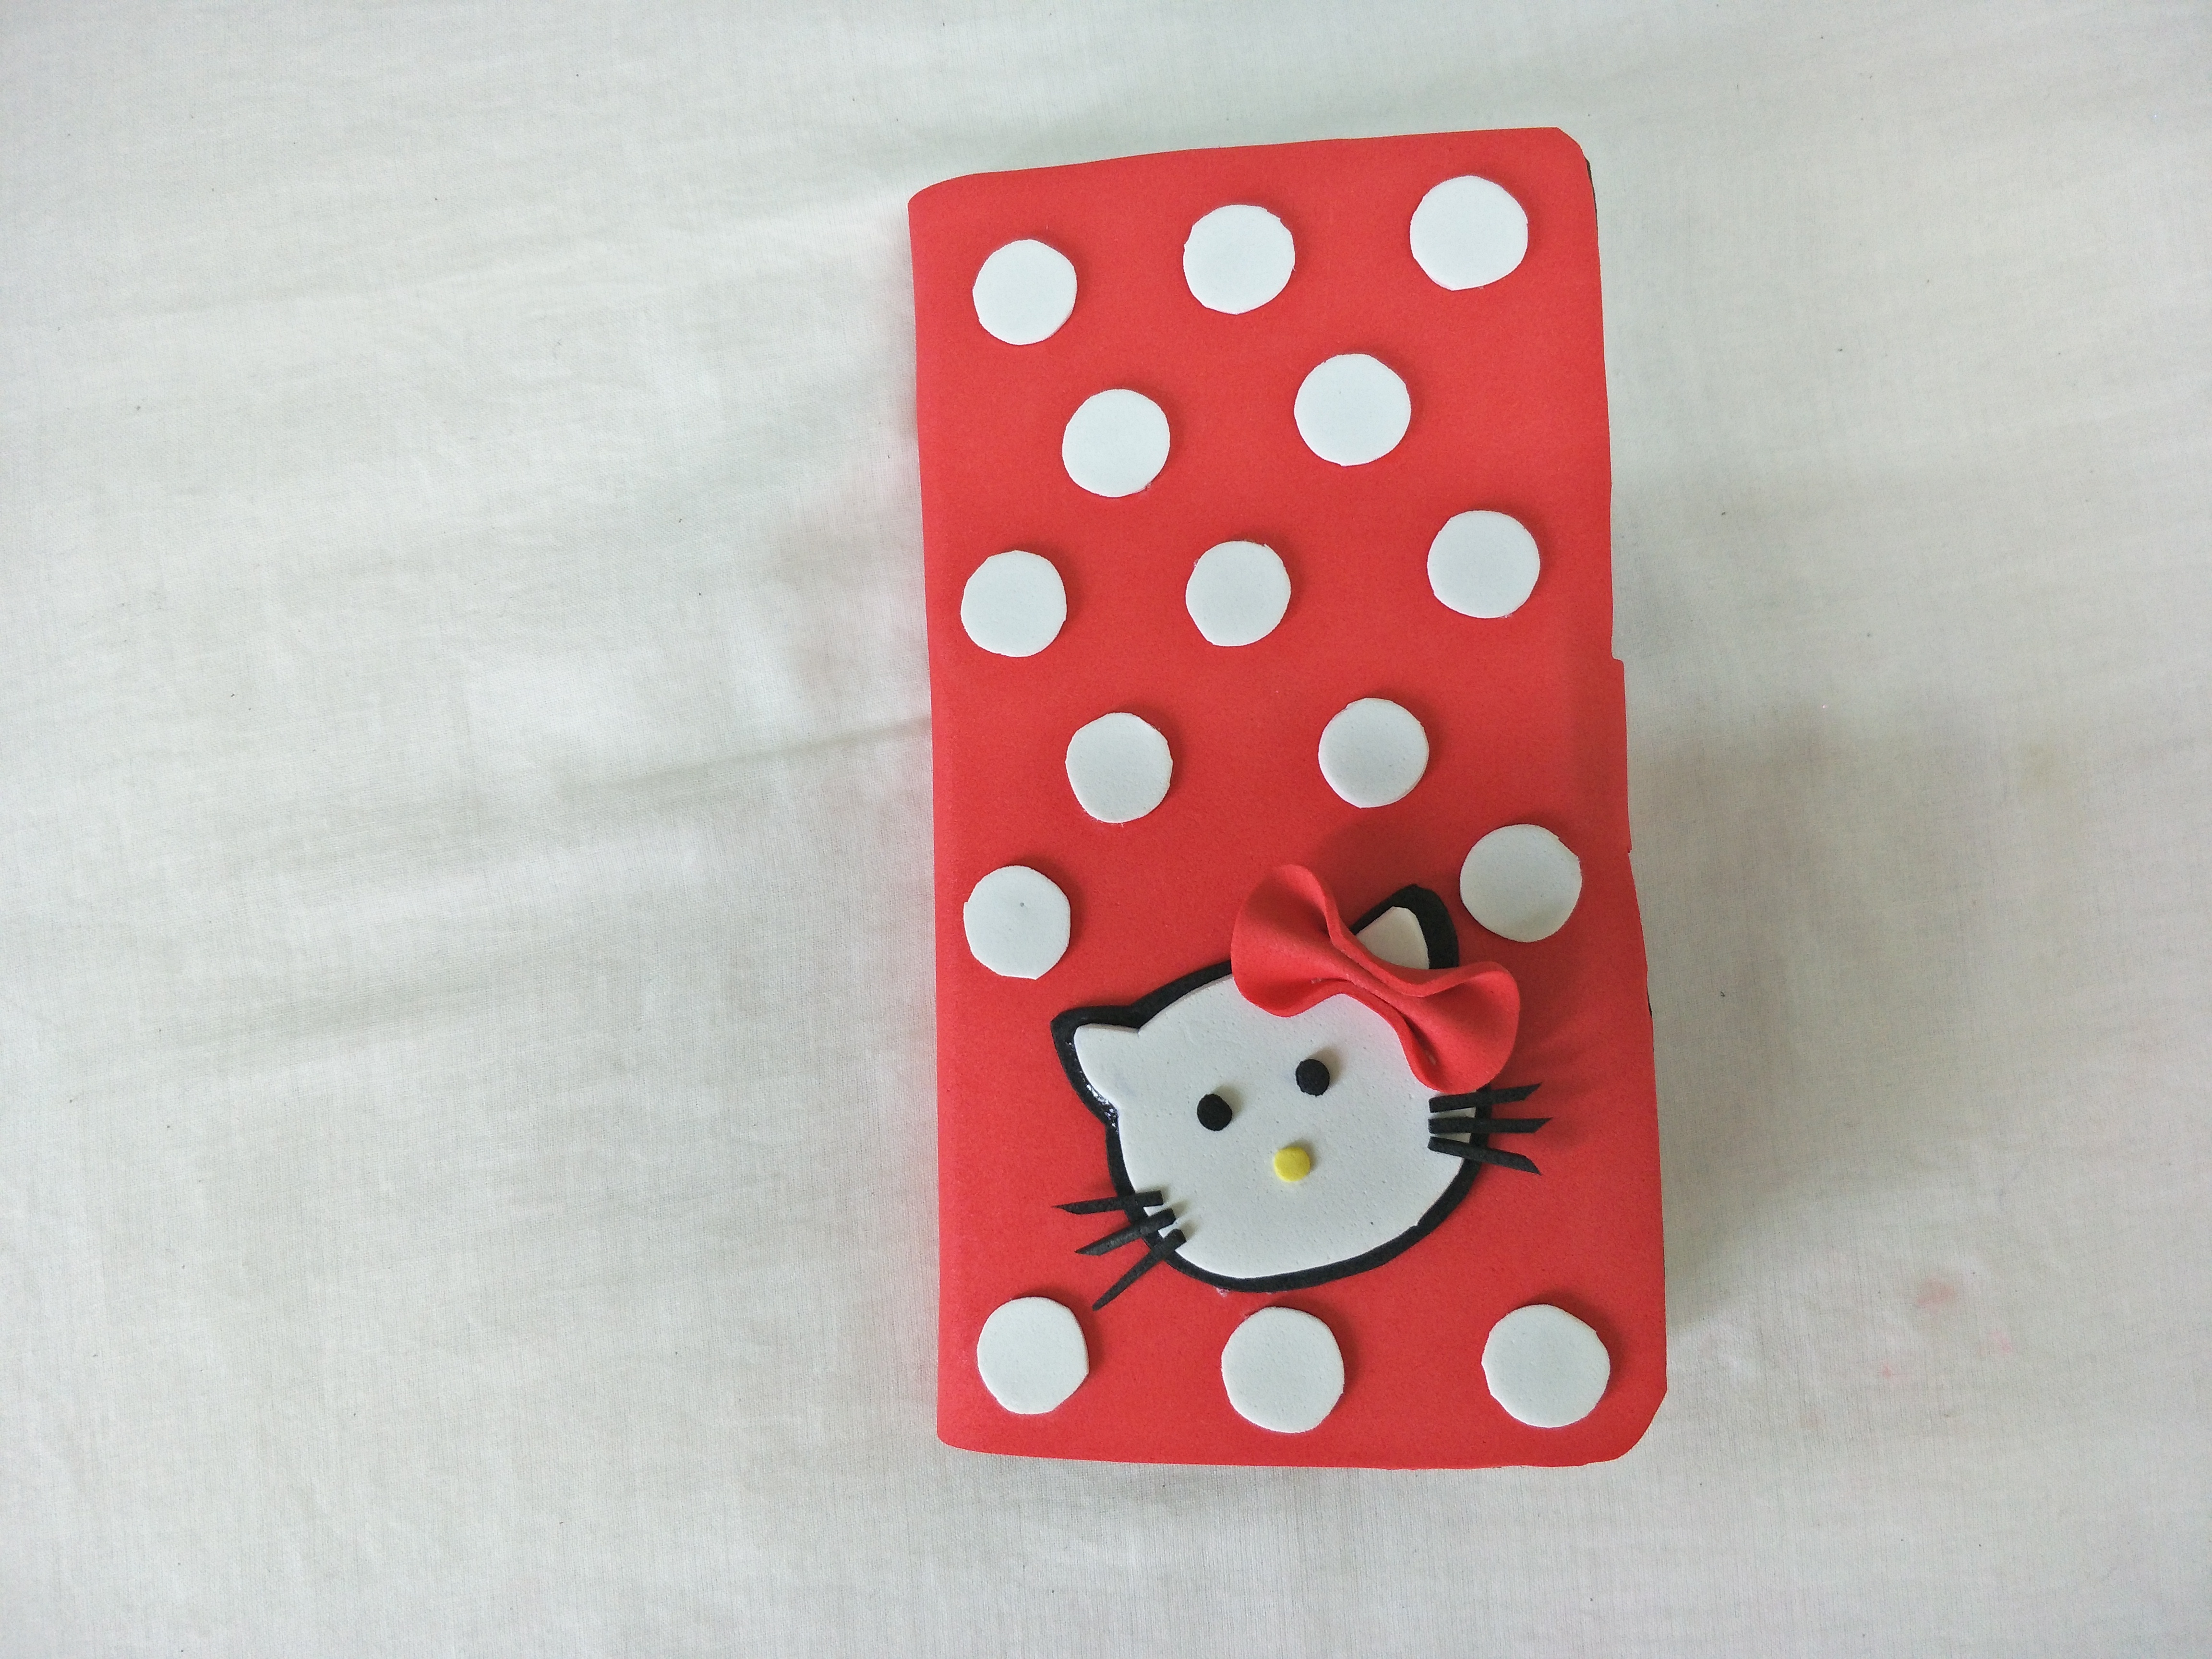 newest collection c3181 3b138 How to make a homemade mobile cover - Simple Craft Ideas